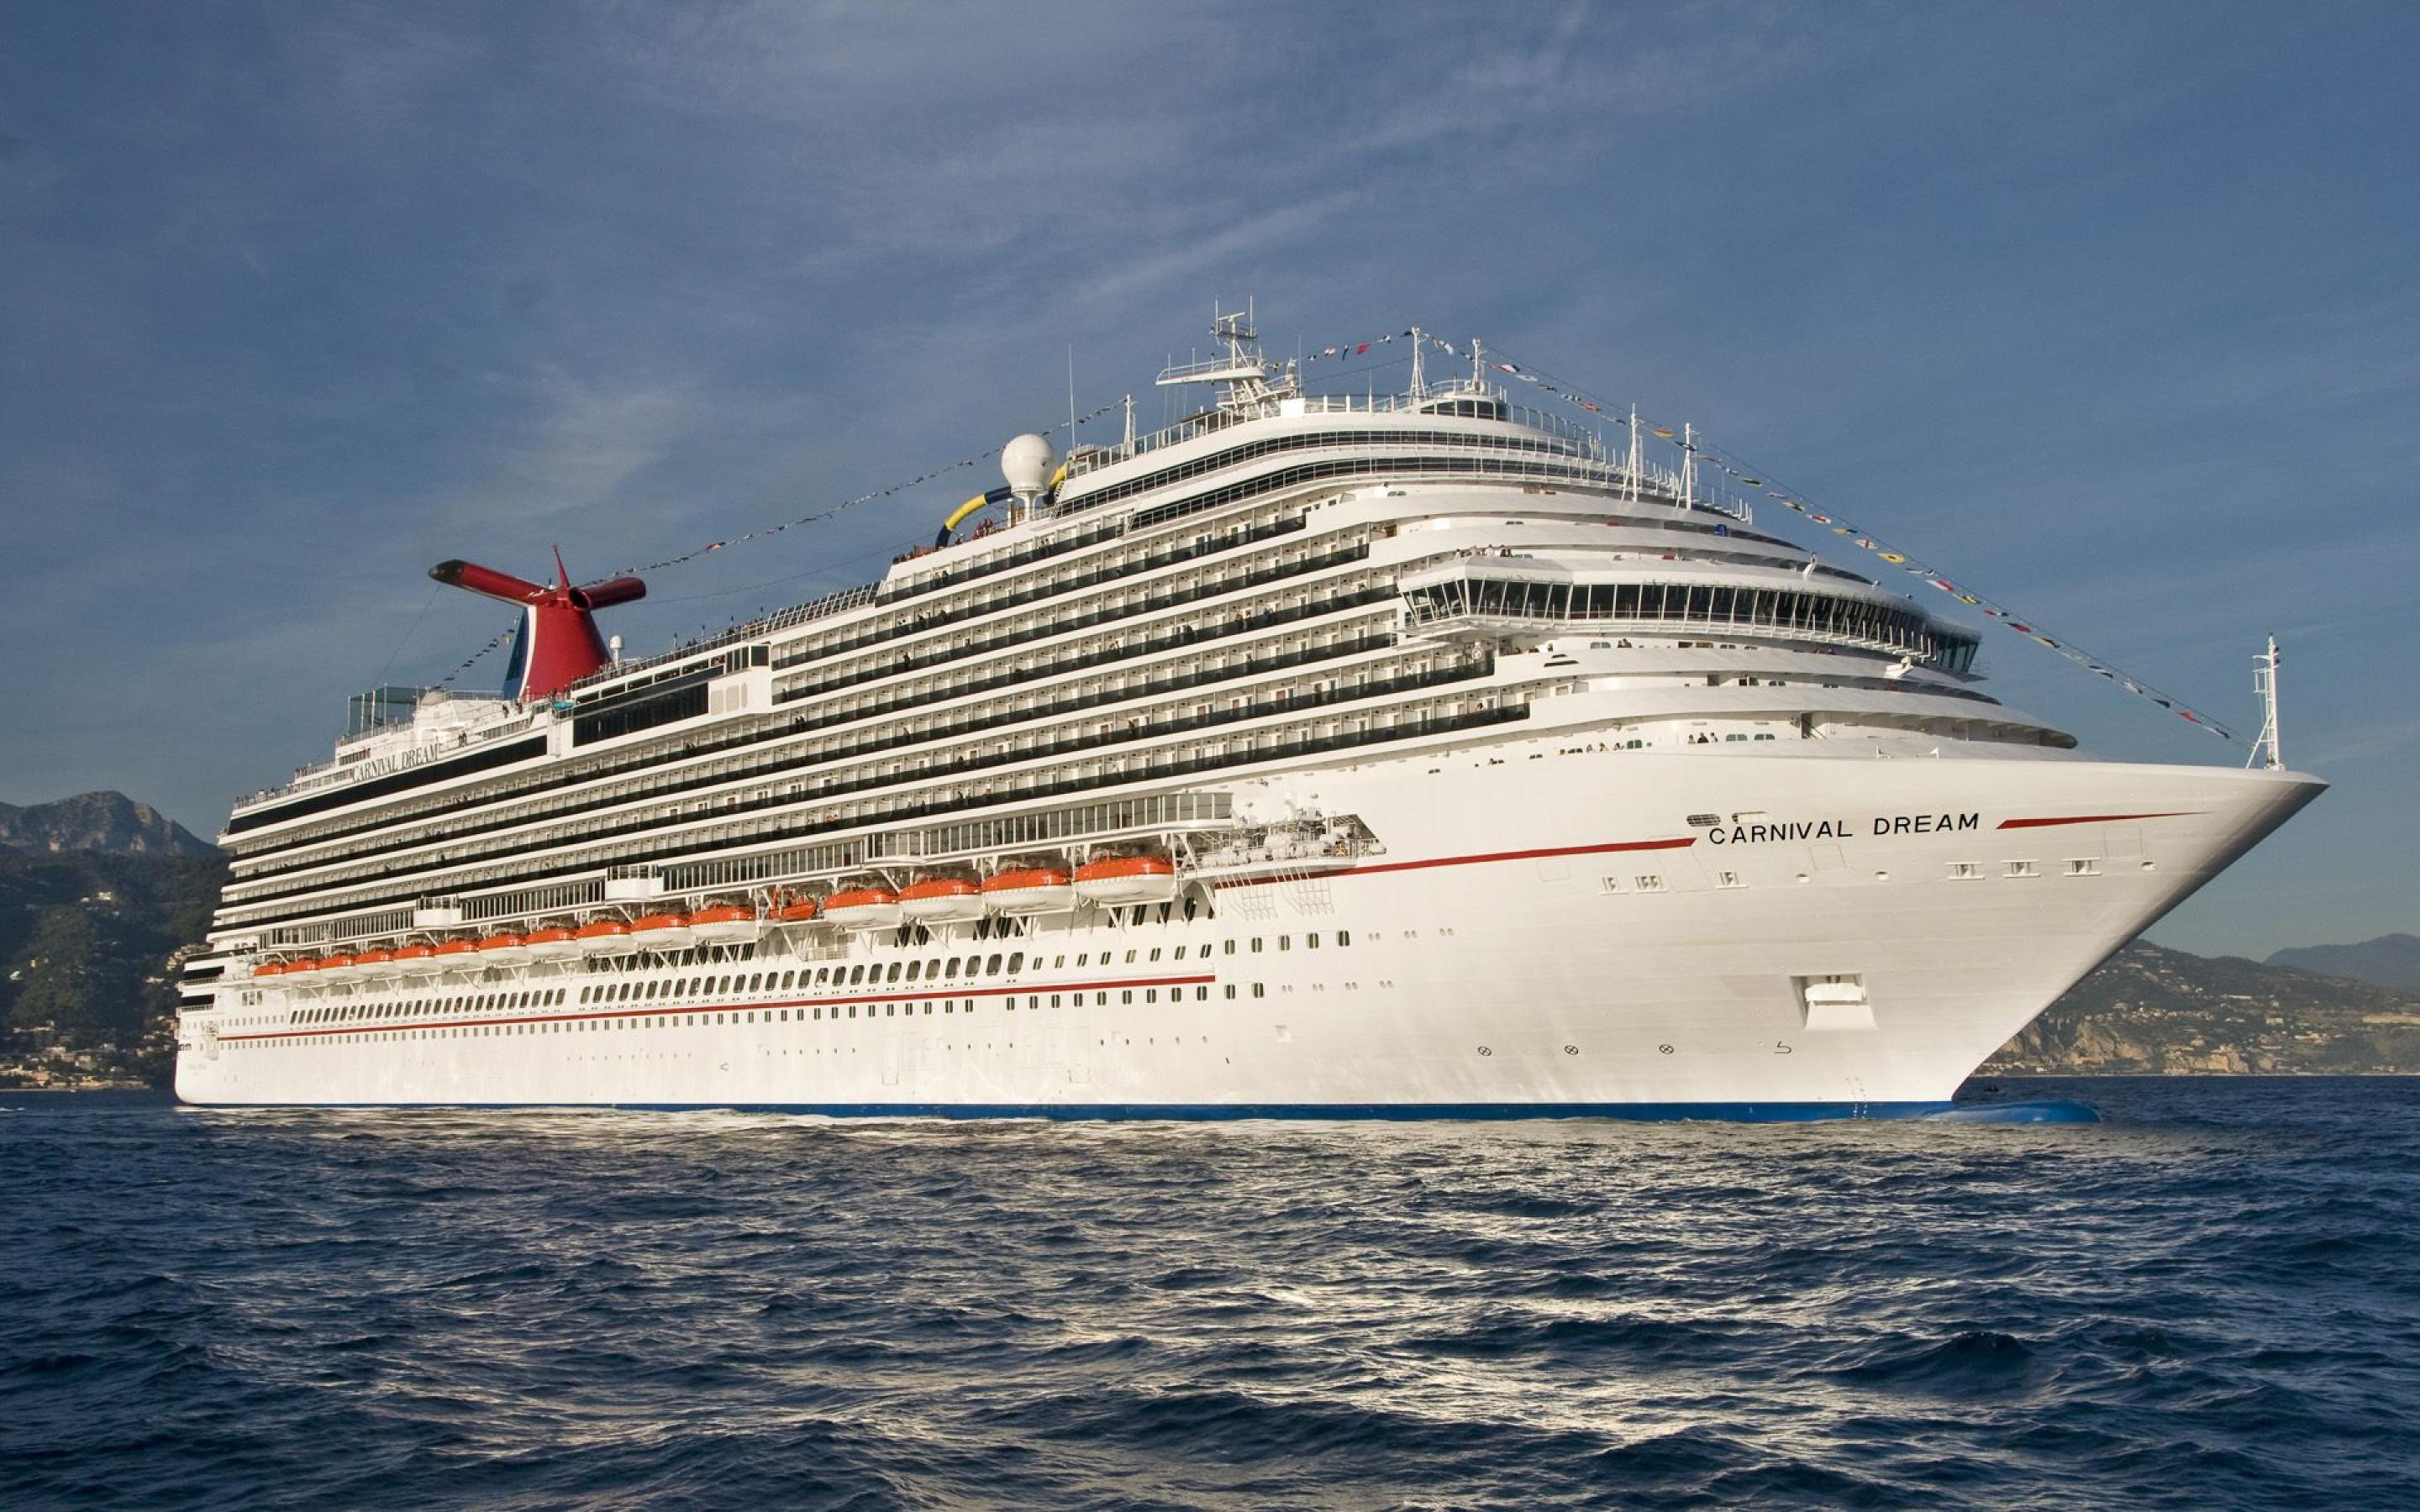 Dream Cruise Ship Wallpaper Carnival Dream Cruise Ship Wallpaper 2880x1800